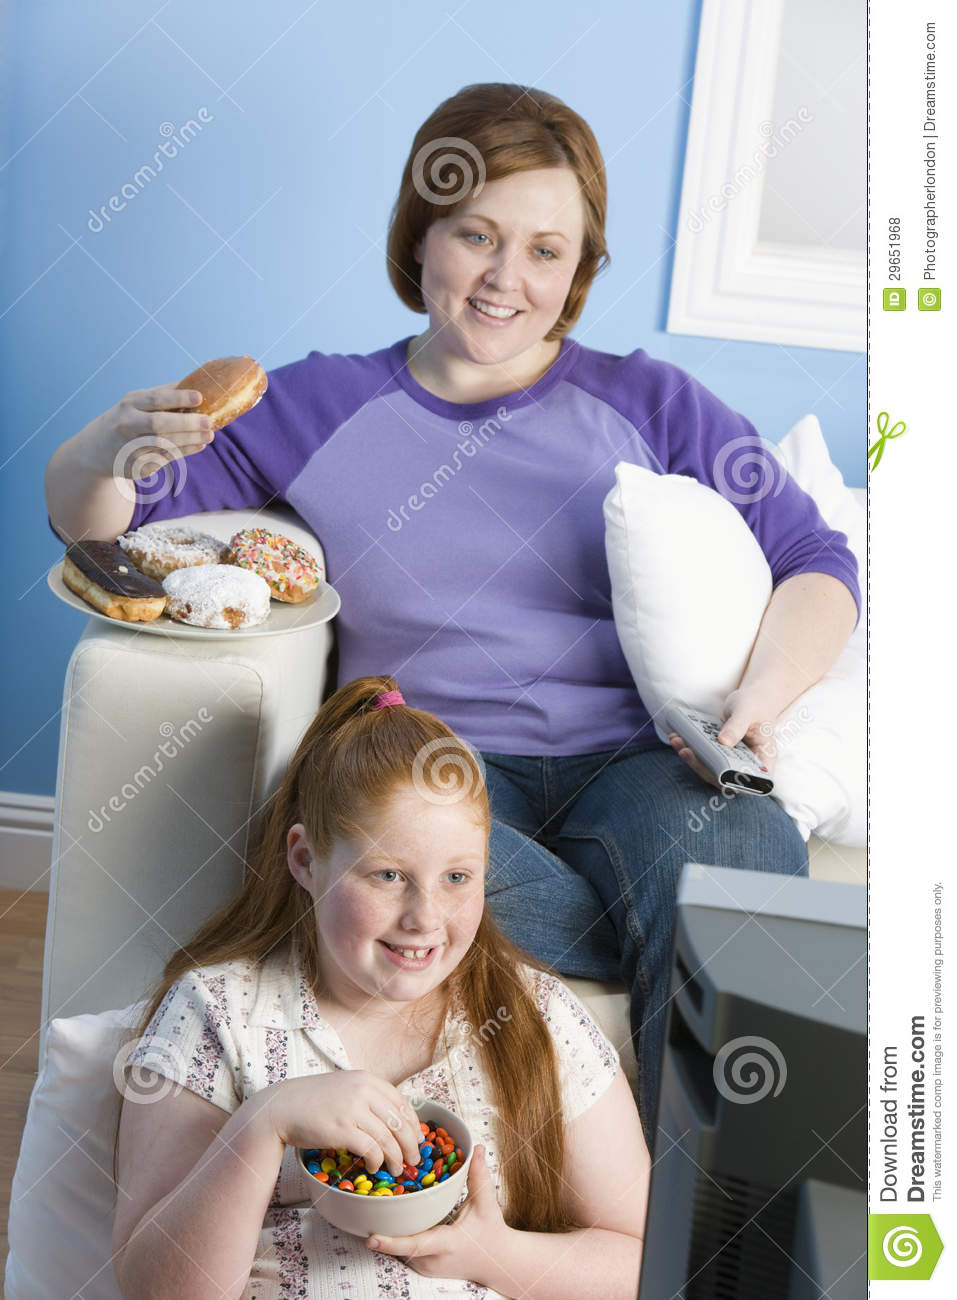 Watch Mom In Bedroom Camera: Couch Potato Eating And Watching TV Stock Image